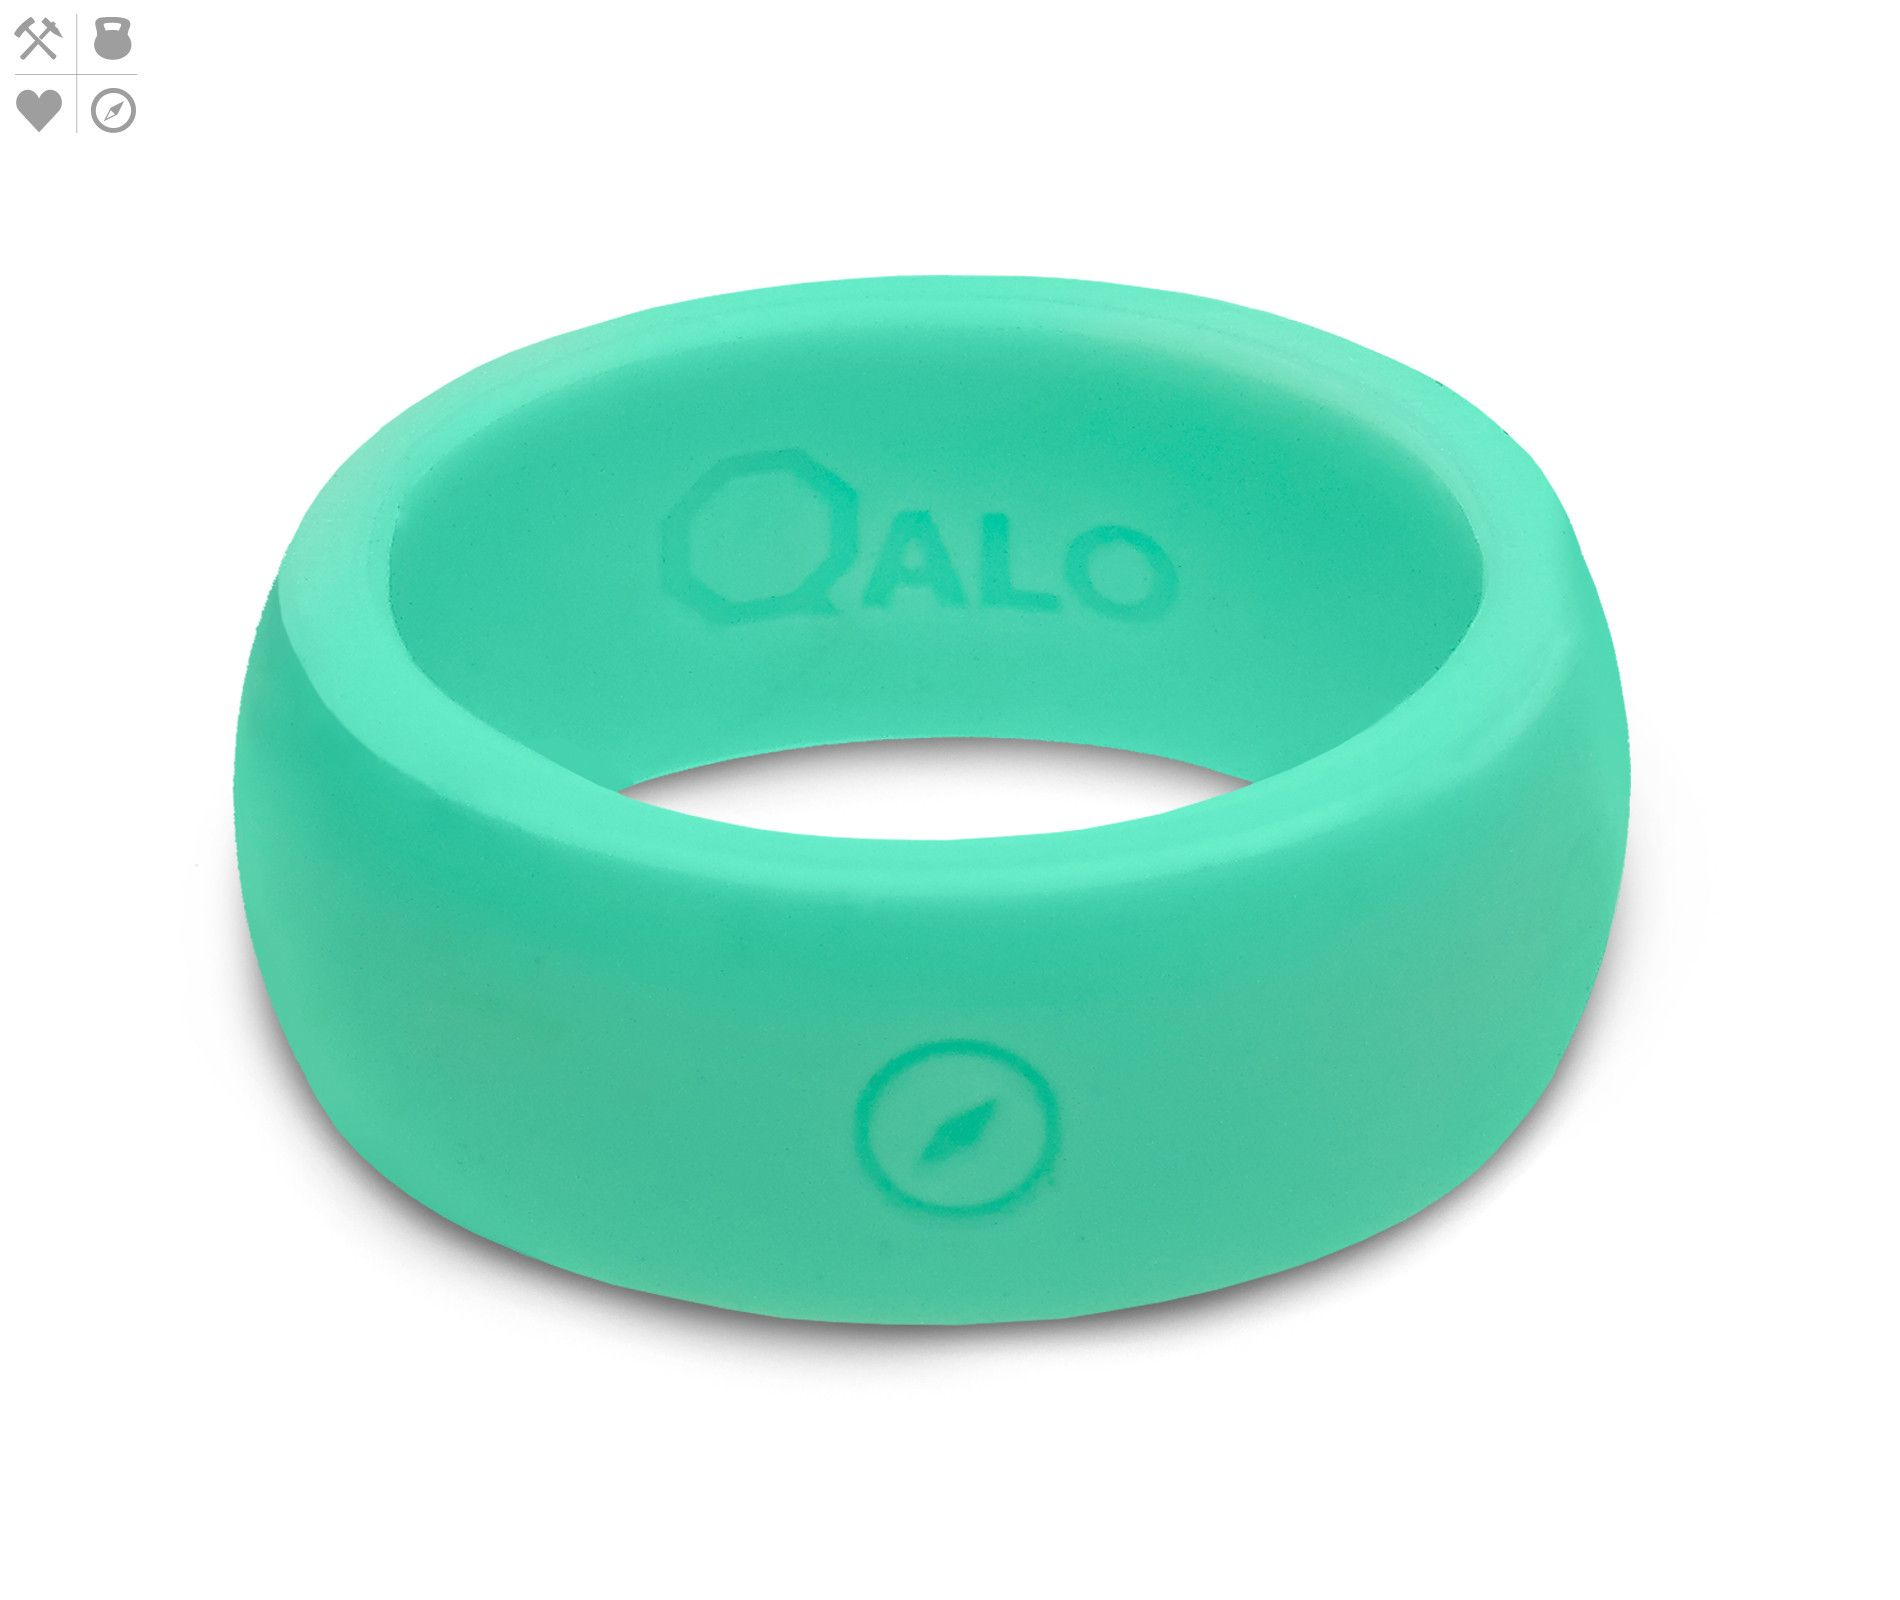 Mens Outdoors Aqua FoxFire Silicone Ring from QALO mr mrs